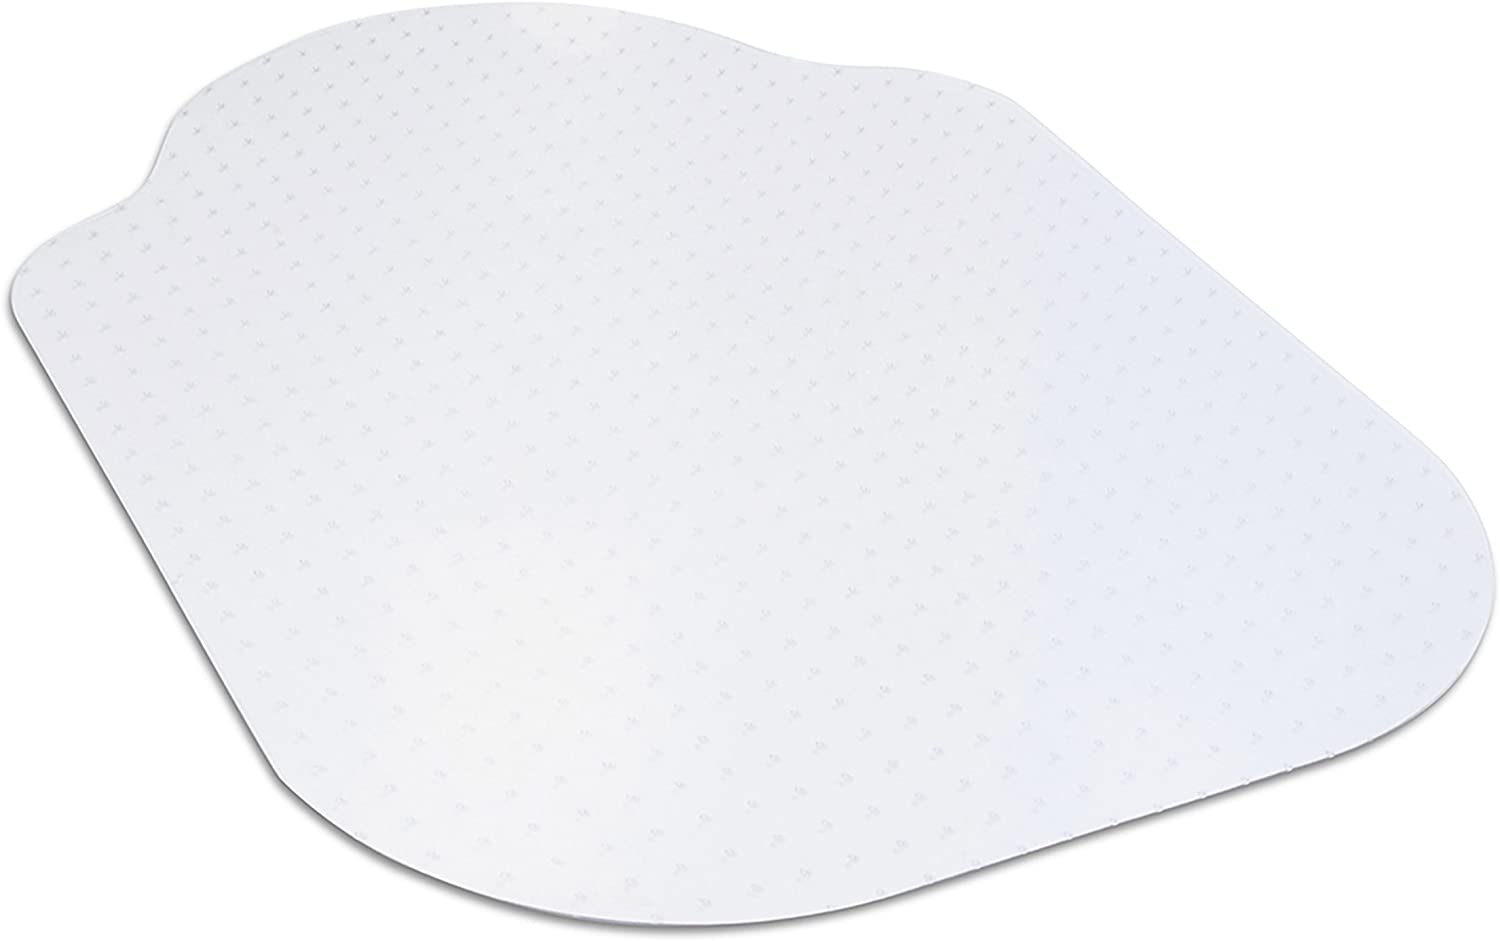 """Evolve Modern Shape Clear Office Chair Mat with Lip for Low and Medium Pile Carpet, Made in The USA by Dimex, 33"""" x 44"""" (C5B5003J)"""